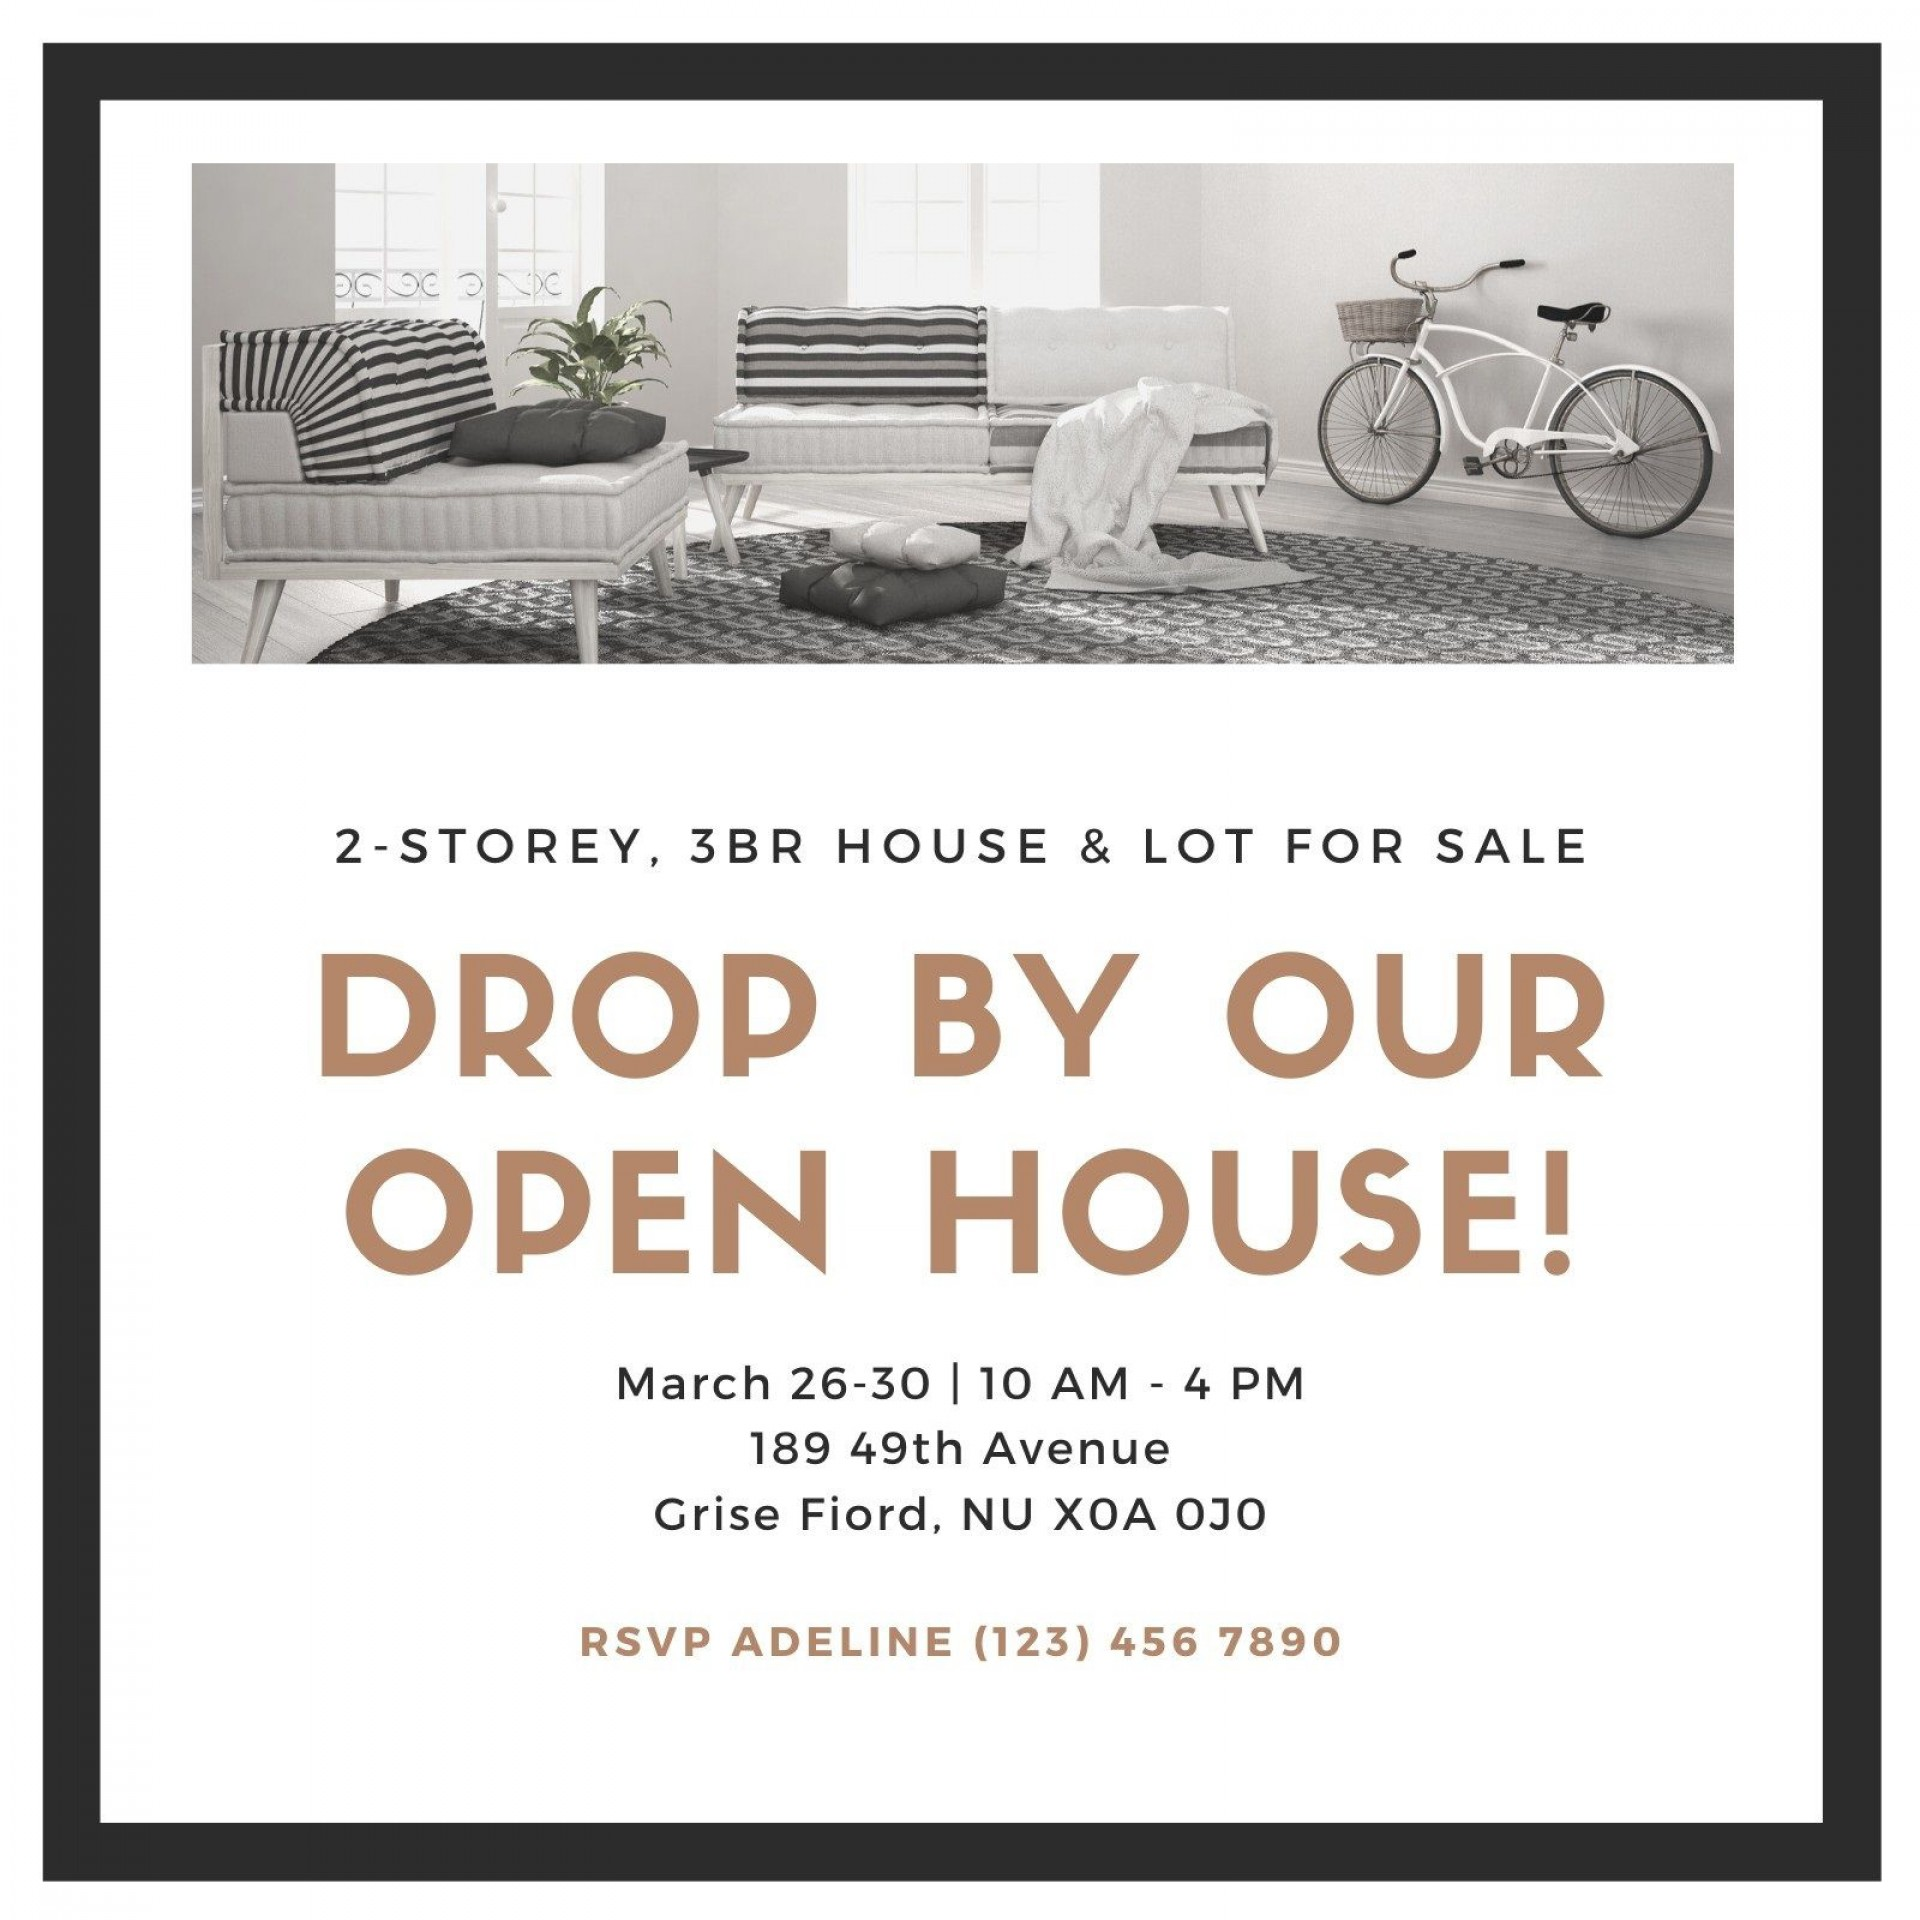 008 Unforgettable Open House Invitation Template Concept  Templates Free Printable Busines1920